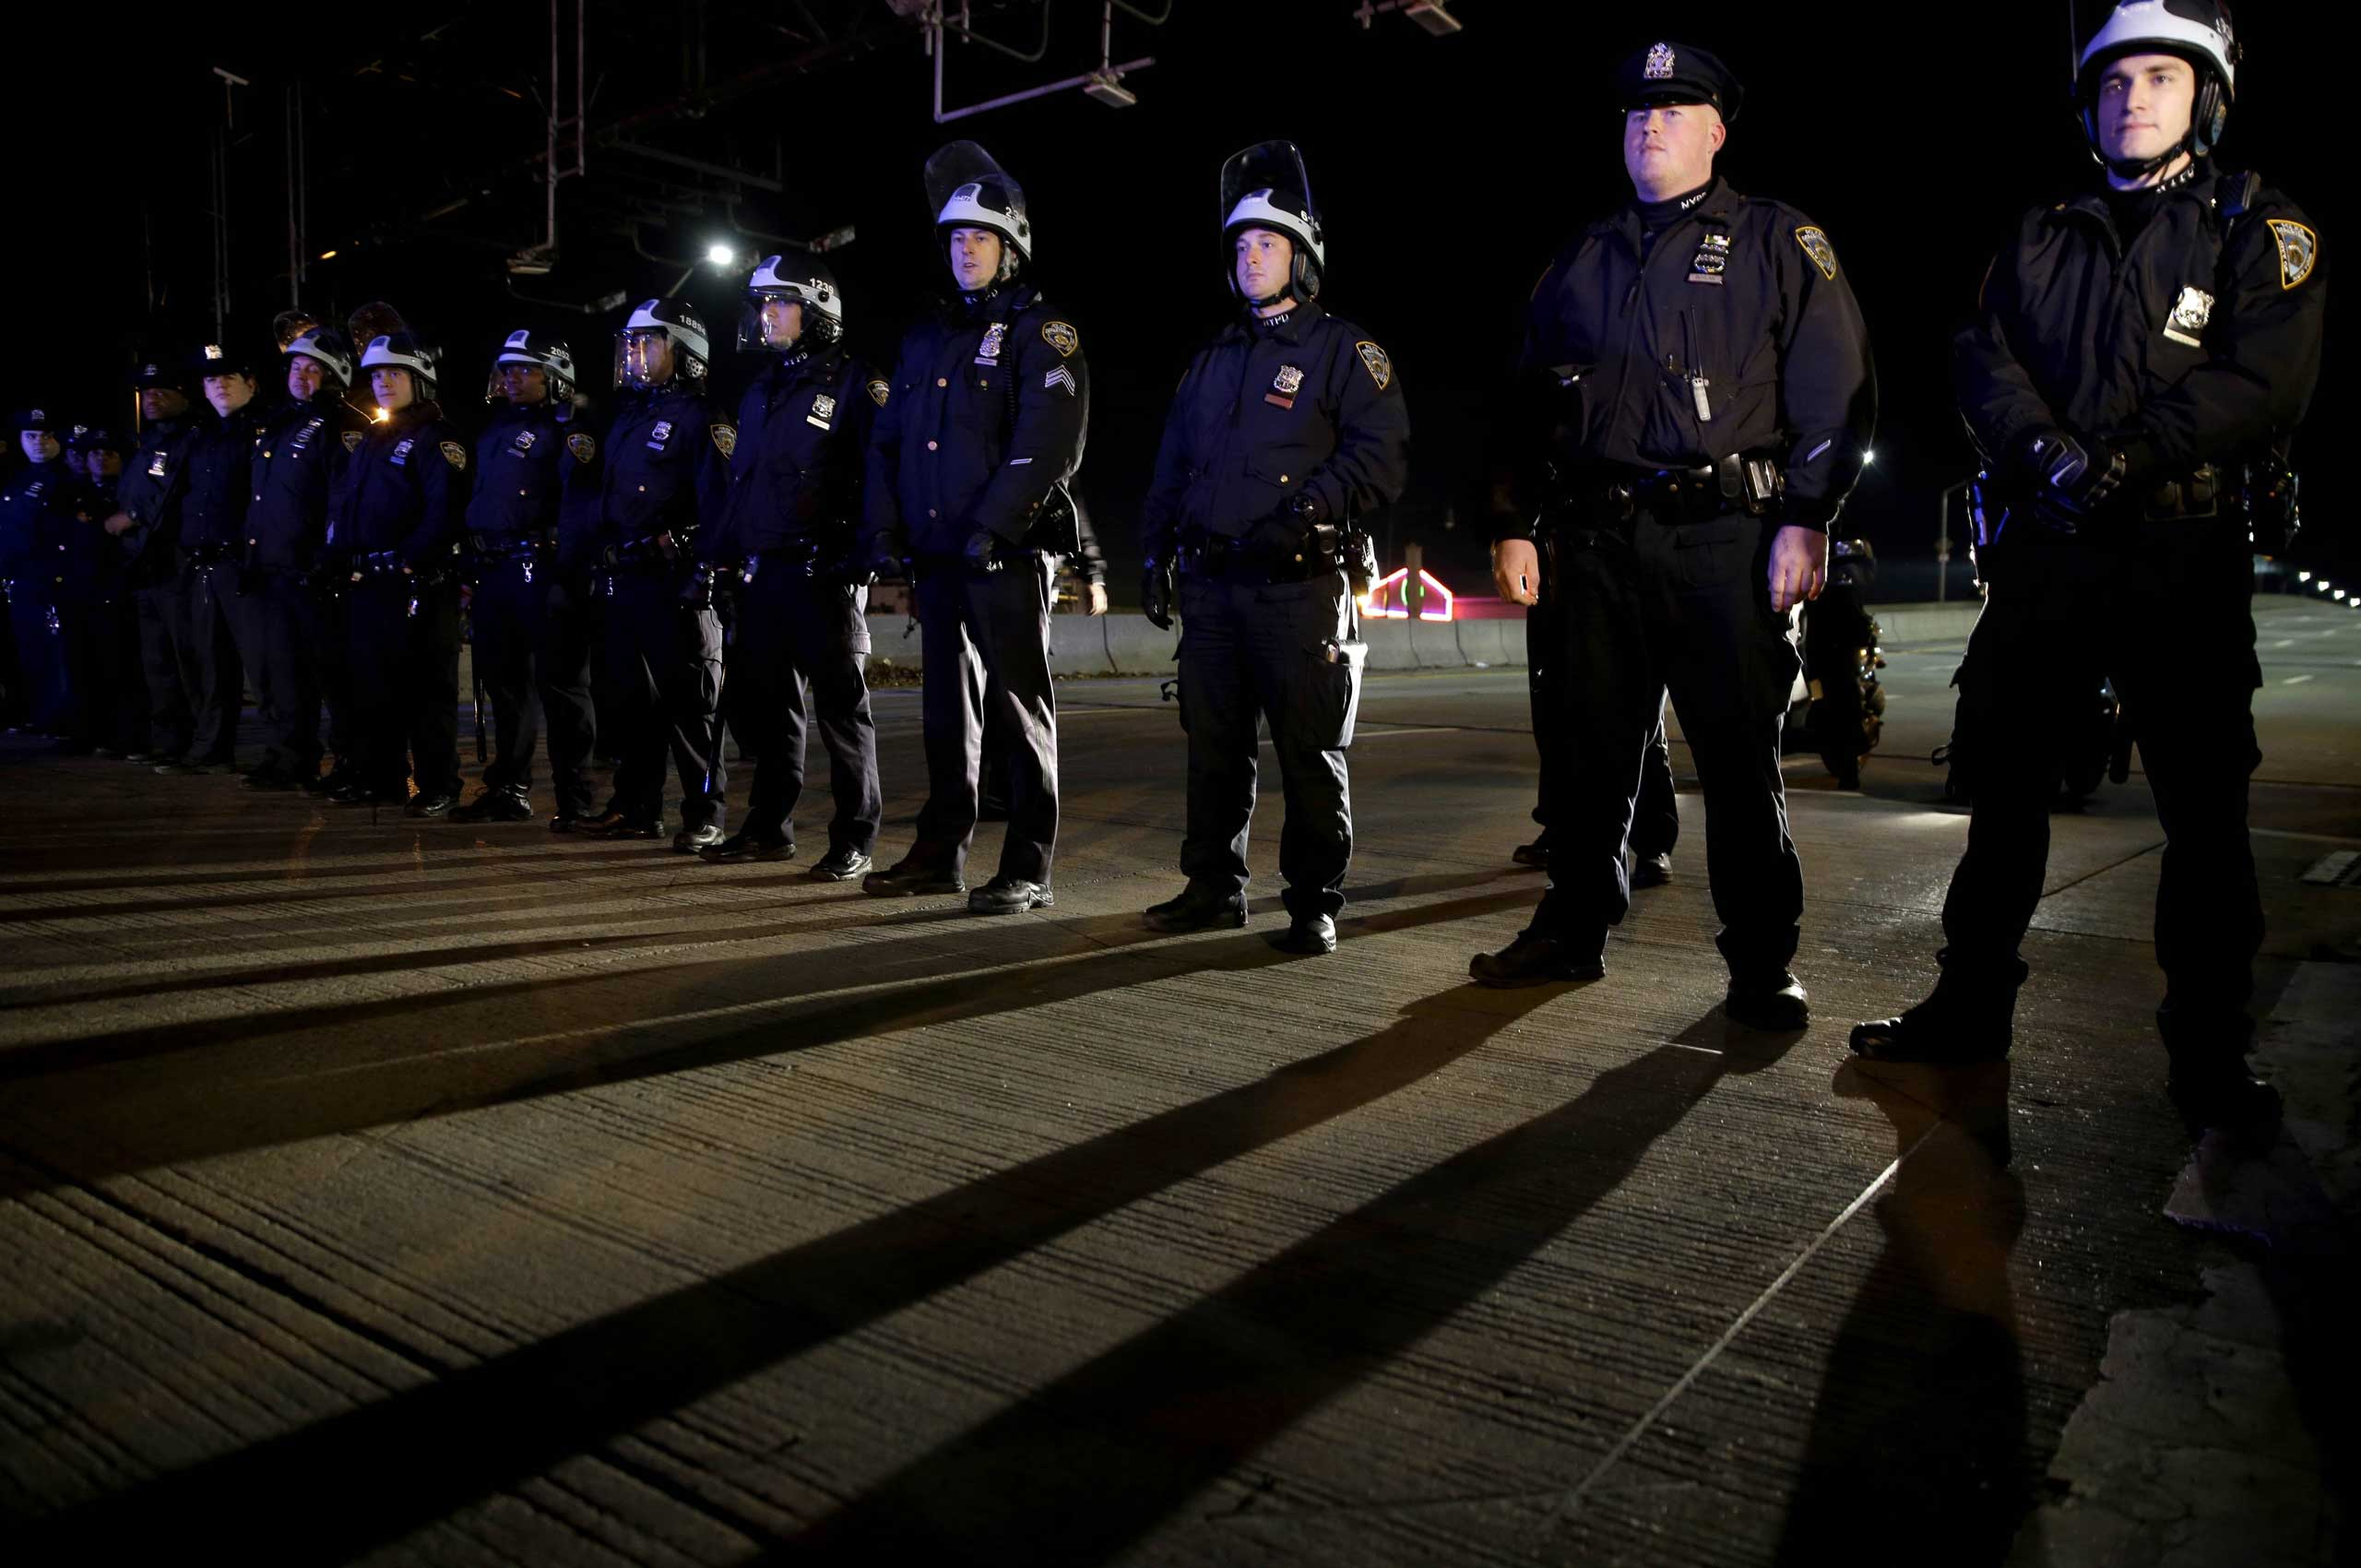 Police officers block protesters from marching up a highway entrance ramp near Times Square in New York City on Dec. 3, 2014.